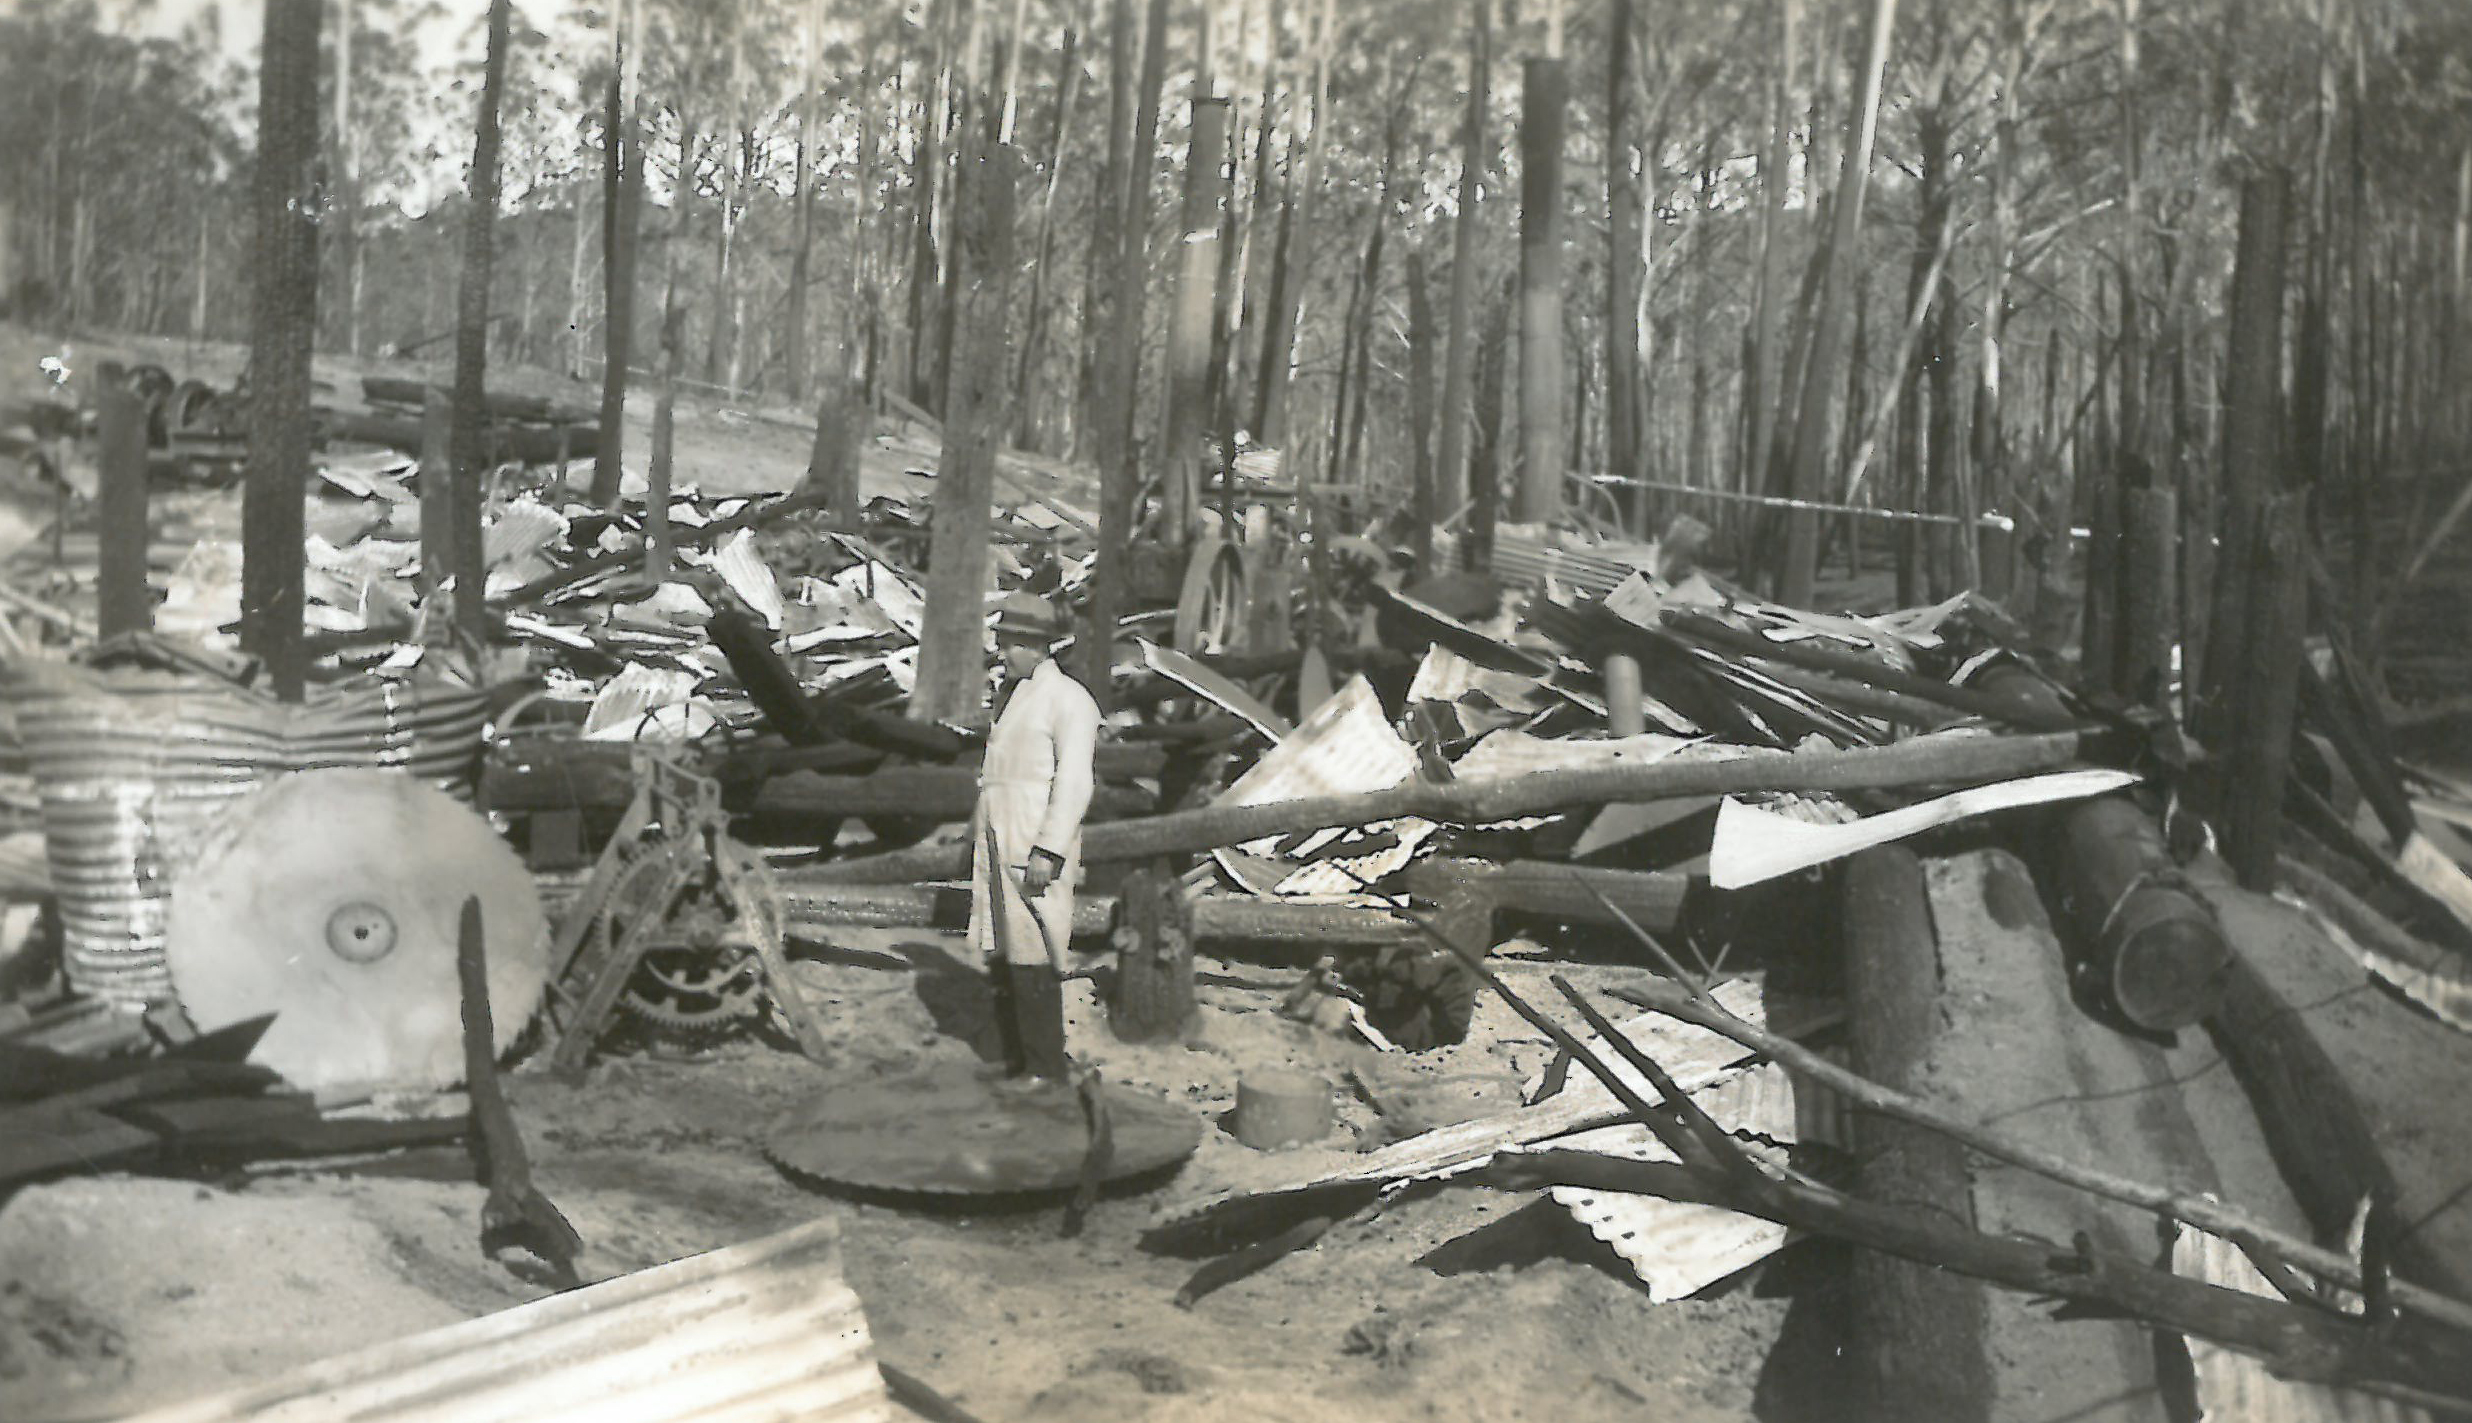 black and white photo of burned hut with man looking on